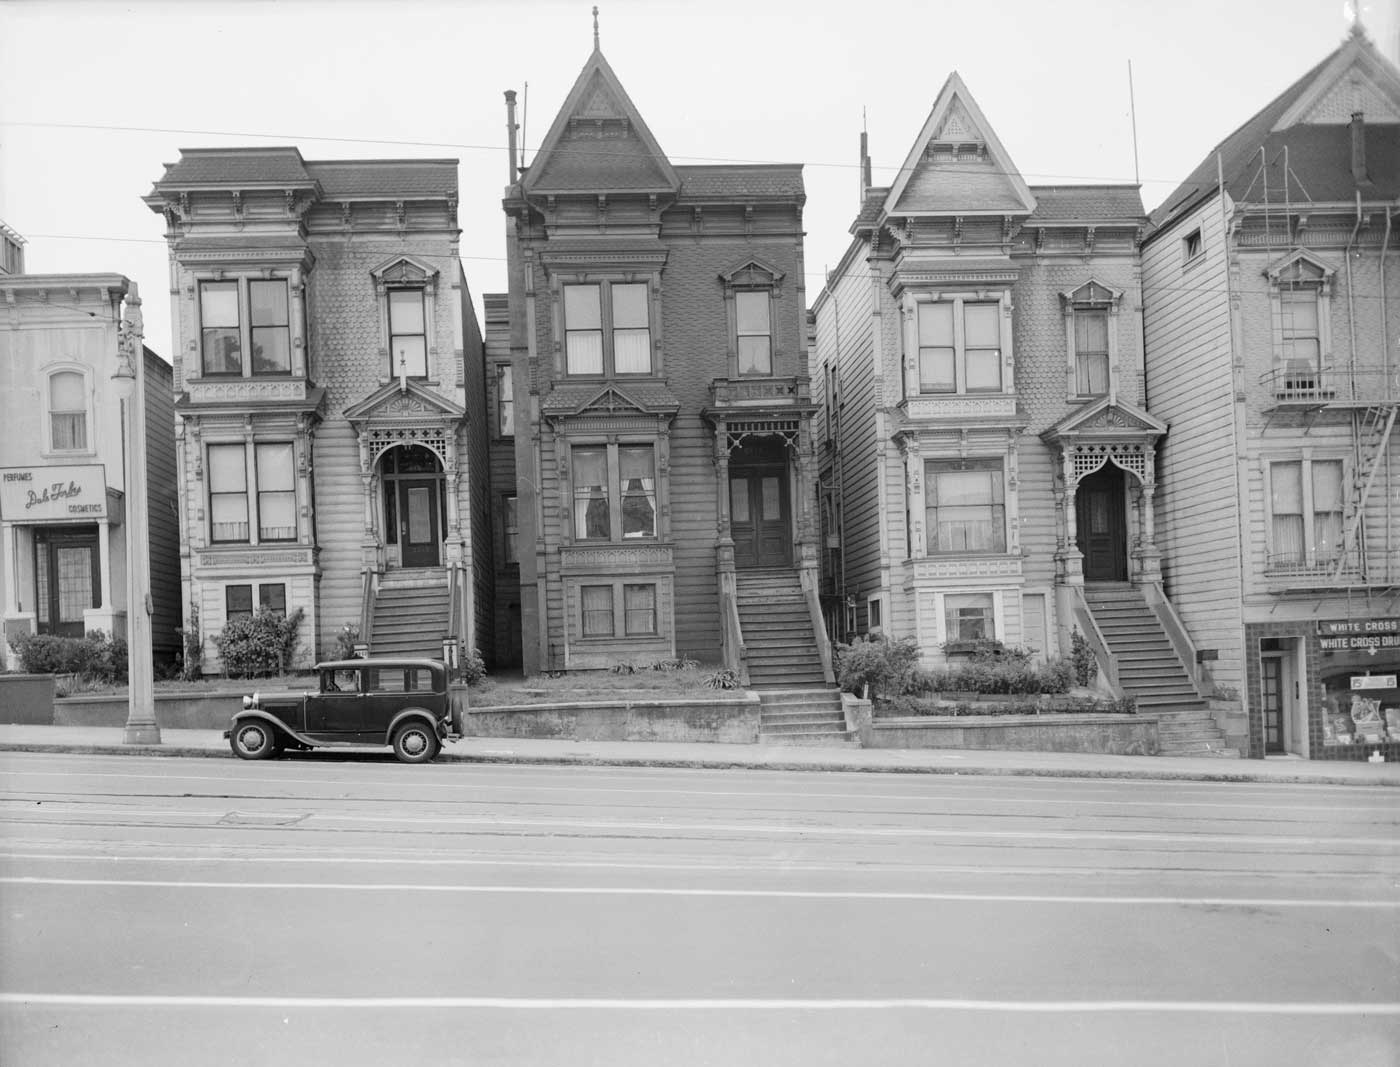 Van-Ness-Avenue-Houses.jpg